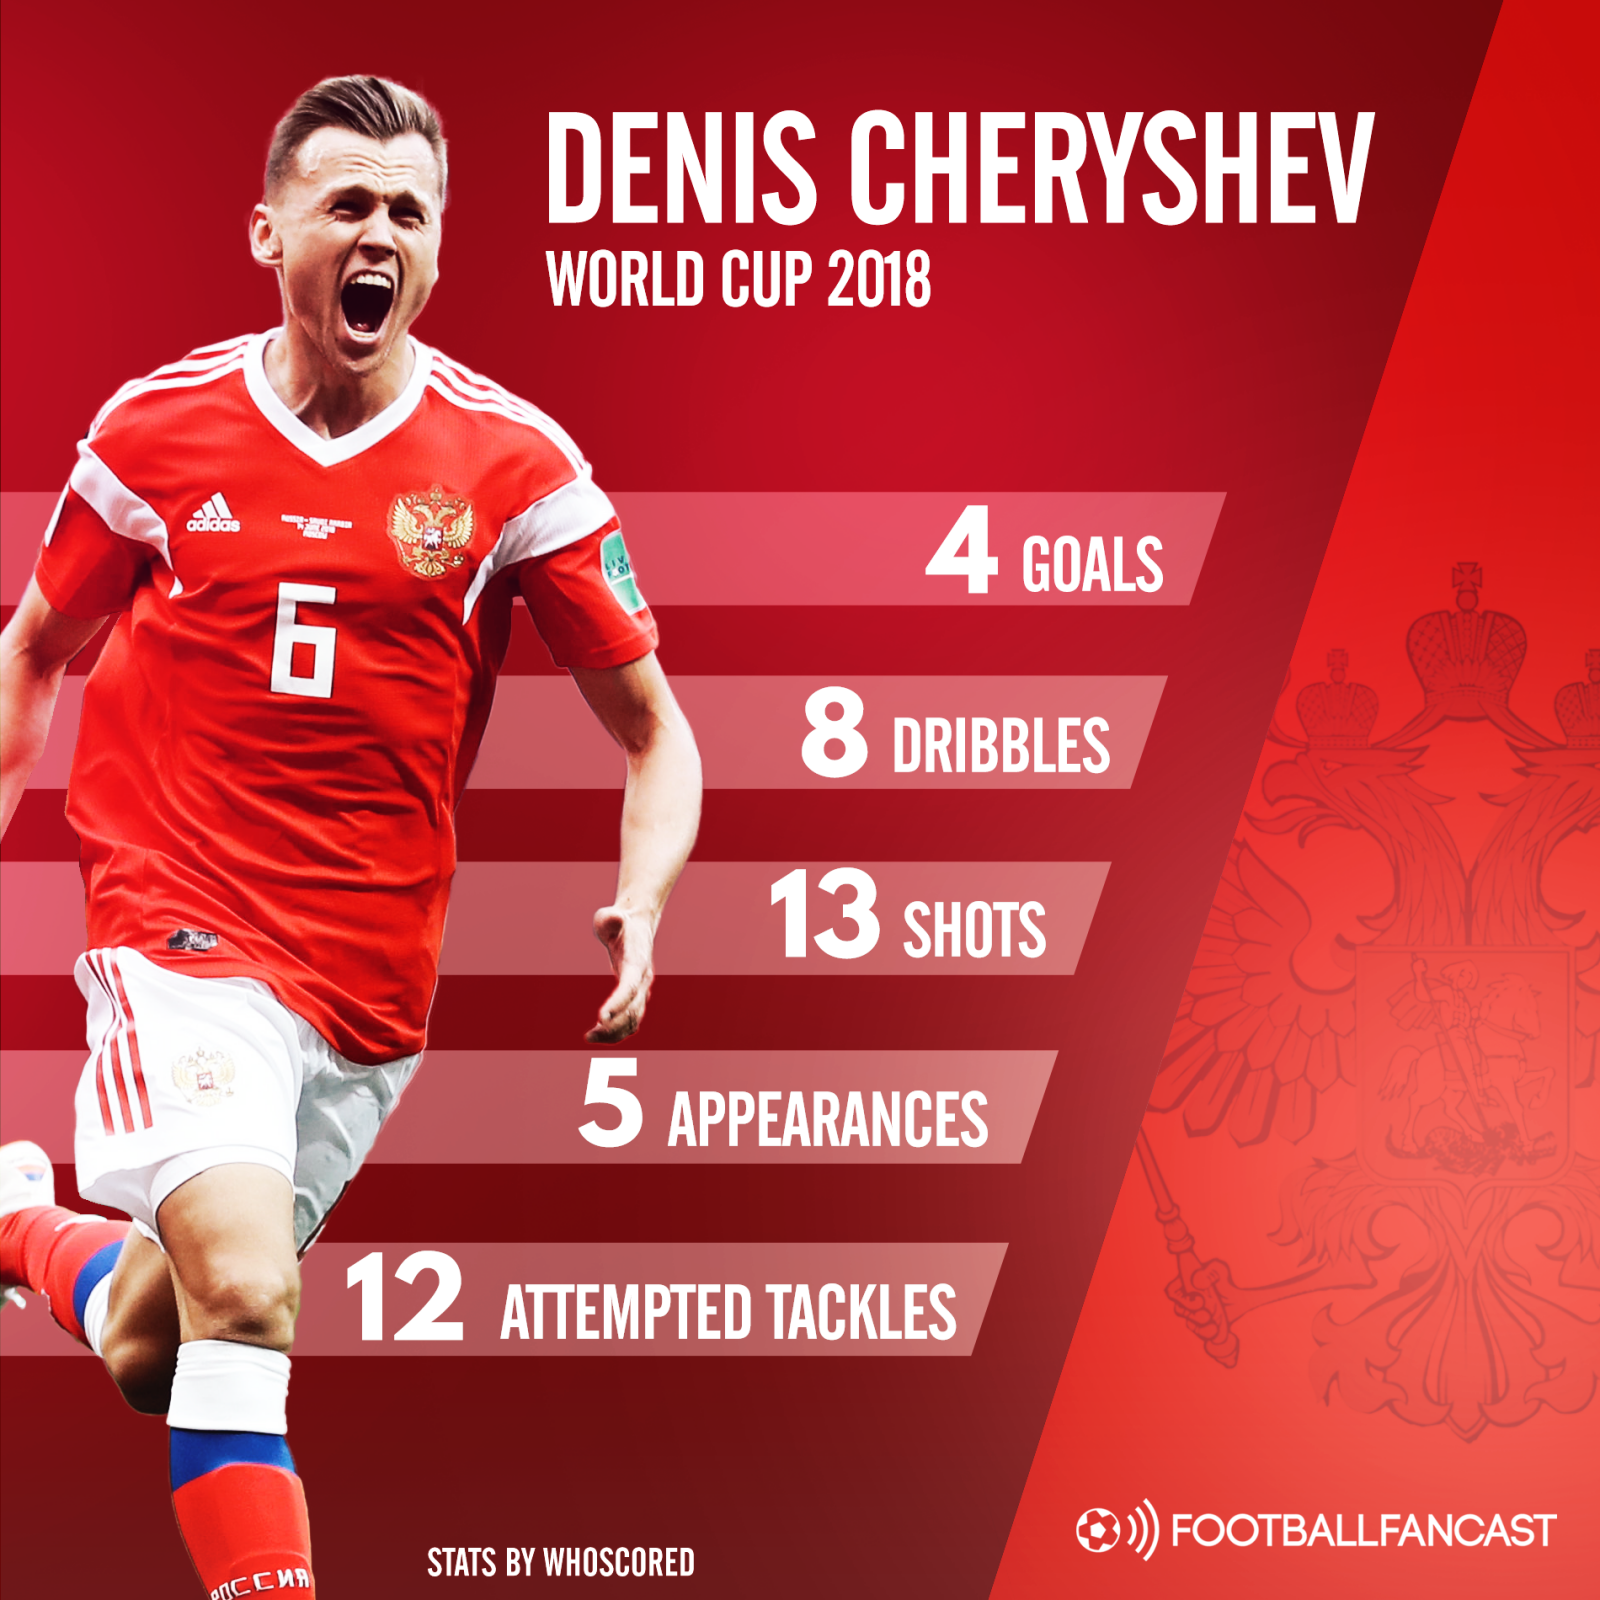 the key stats from denis cheryshev's world cup 2018